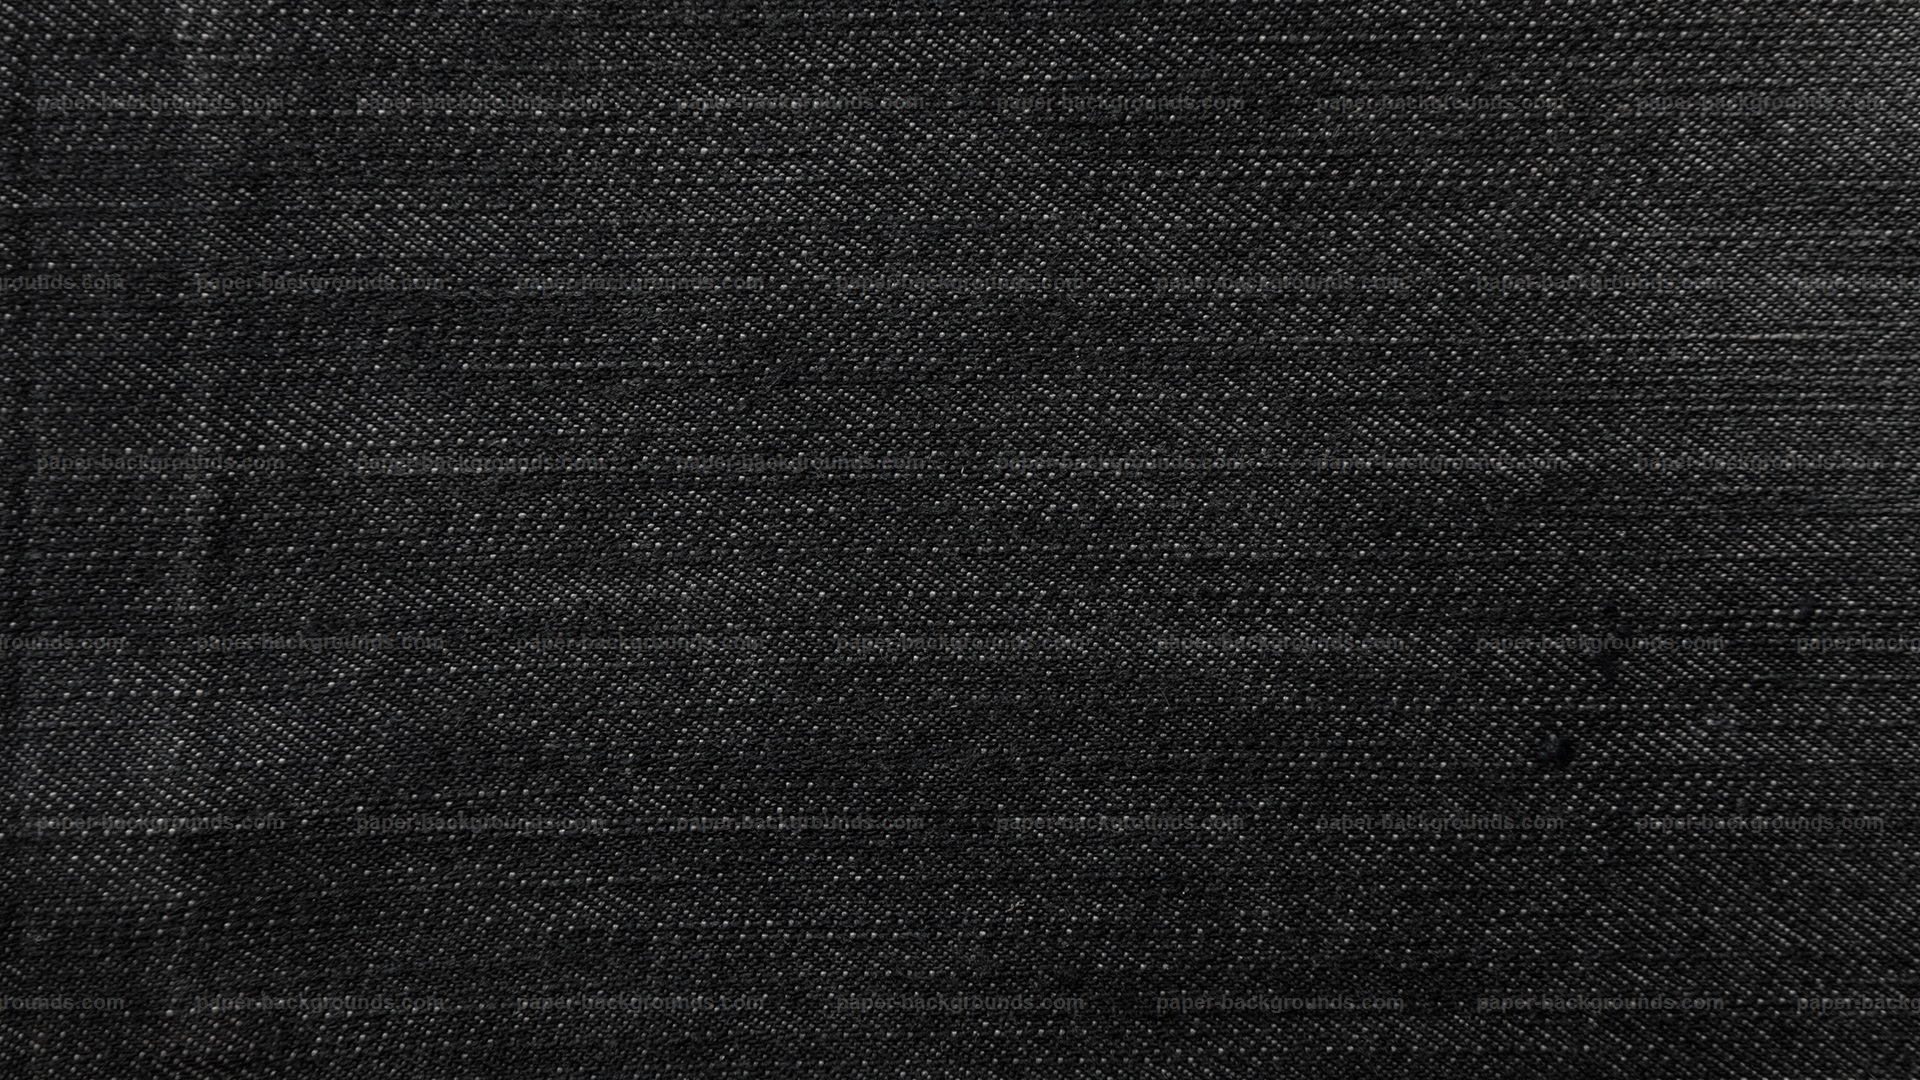 Texture canvas black backgrounds textureimages   1365150 1920x1080